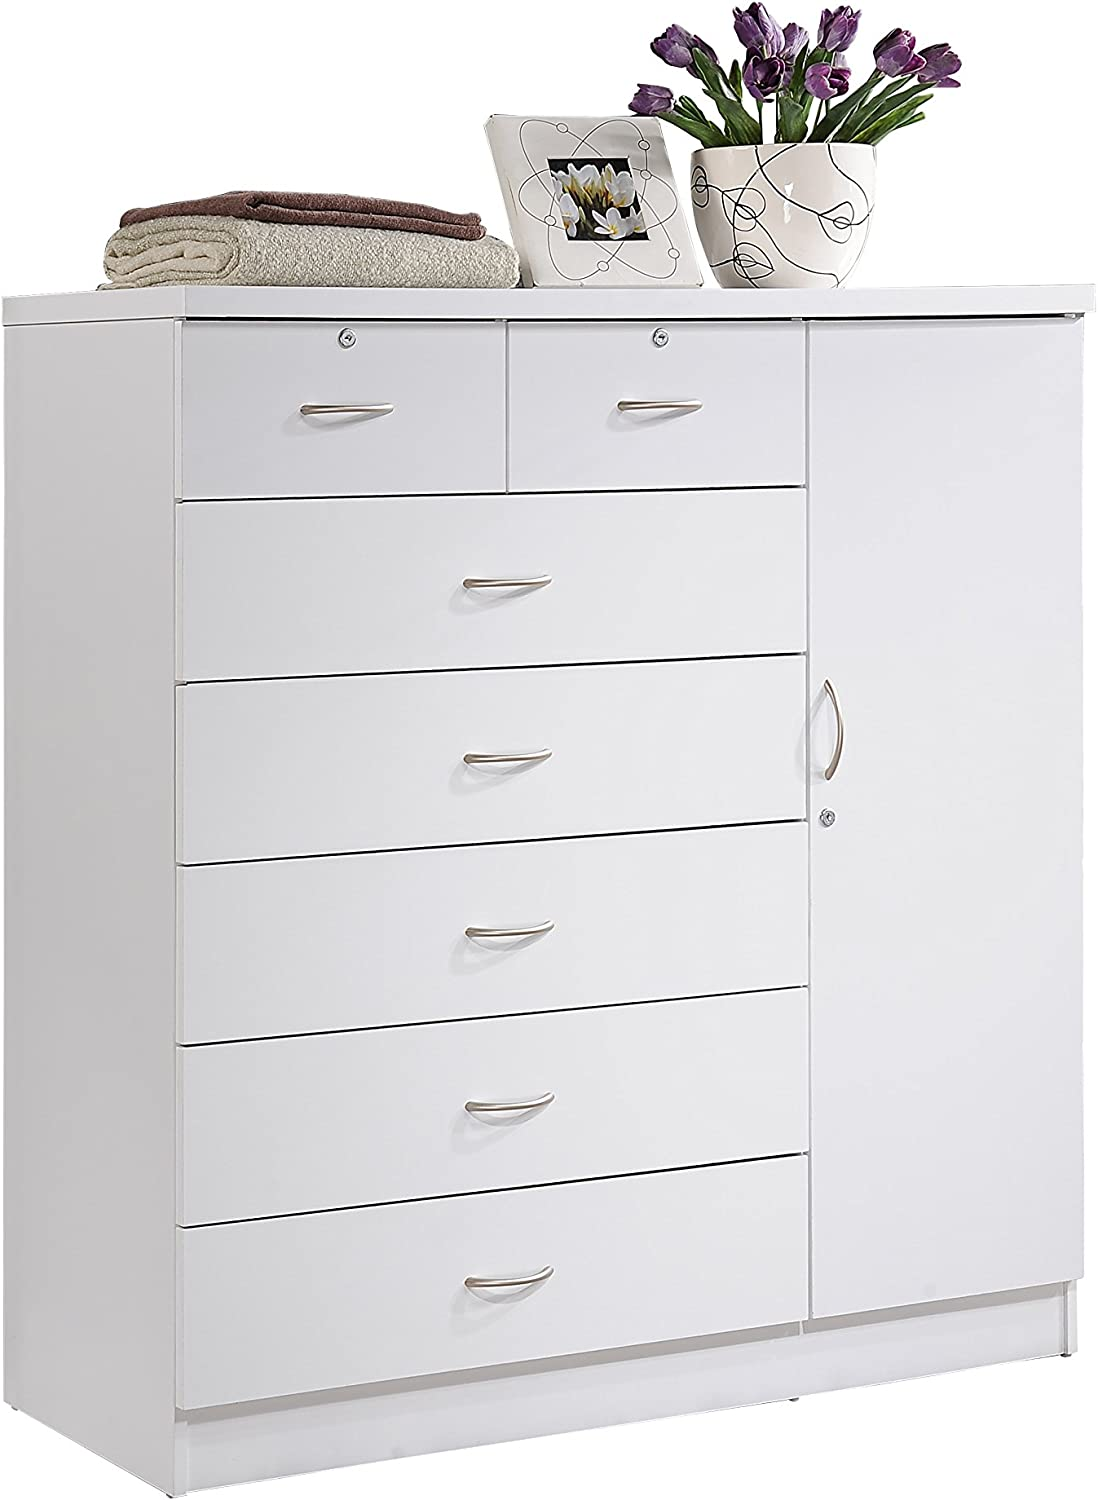 Hodedah 7 Drawer Jumbo Chest, Five Large Drawers, Two Smaller Drawers with Two Lock, Hanging Rod, and Three Shelves | White